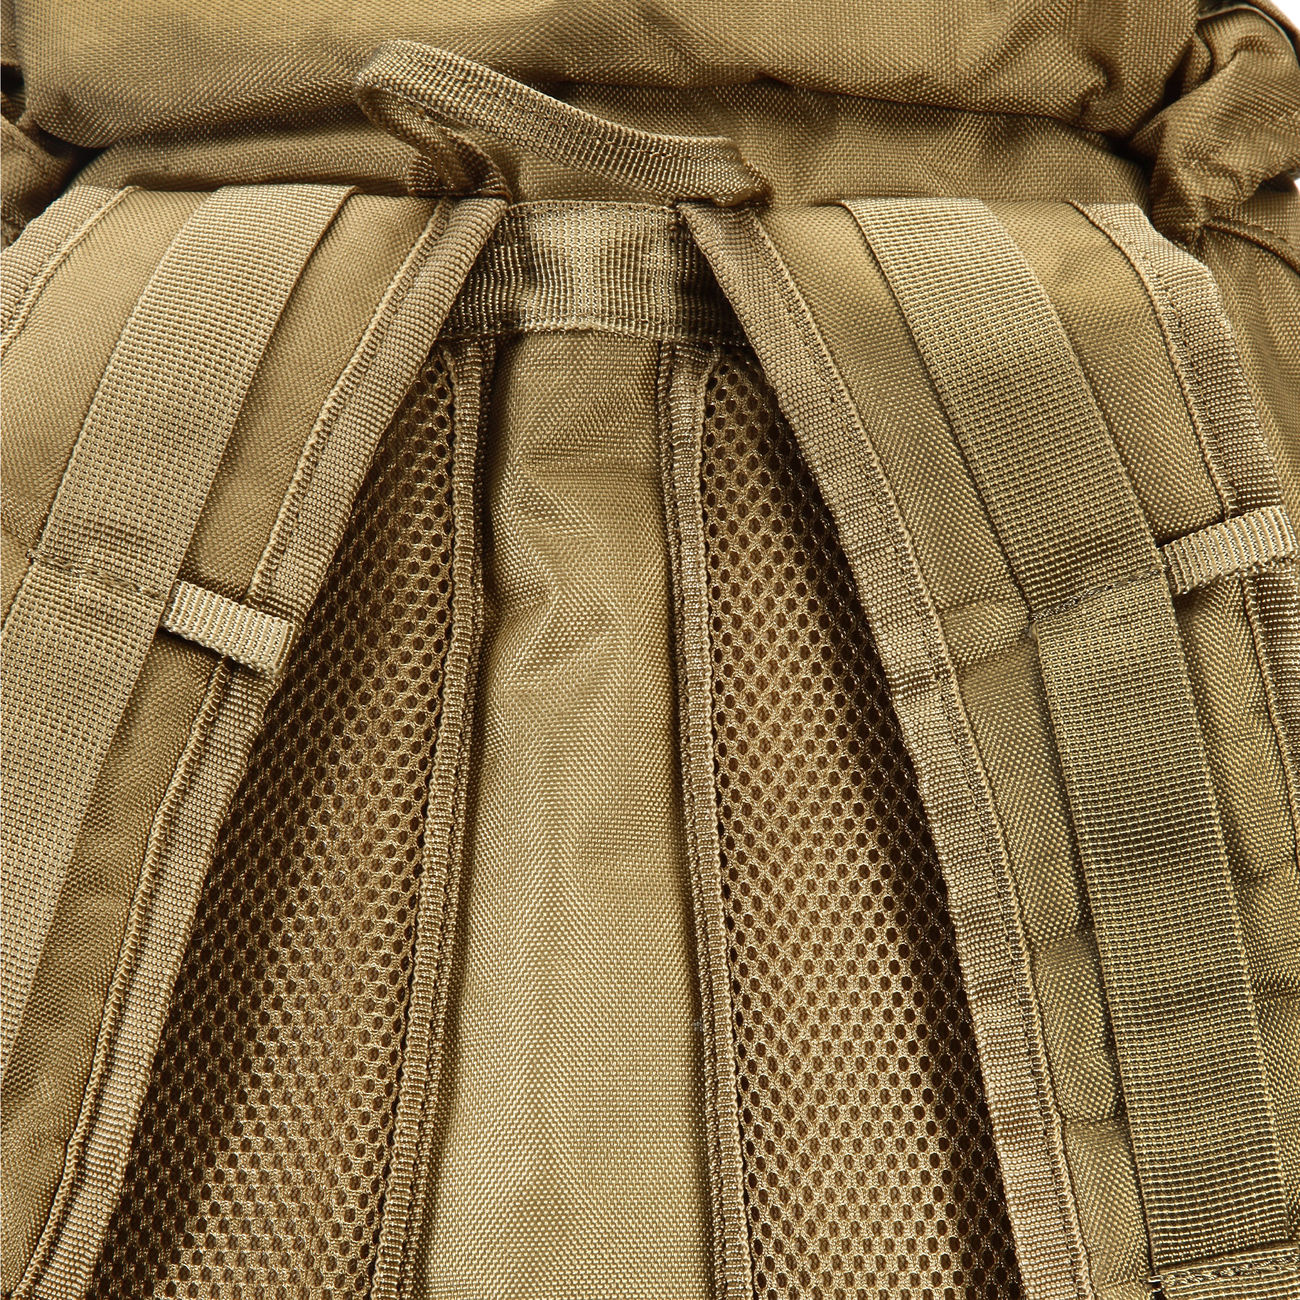 Defcon 5 Tactical Assault Rucksack Hydro 50L coyote tan 4